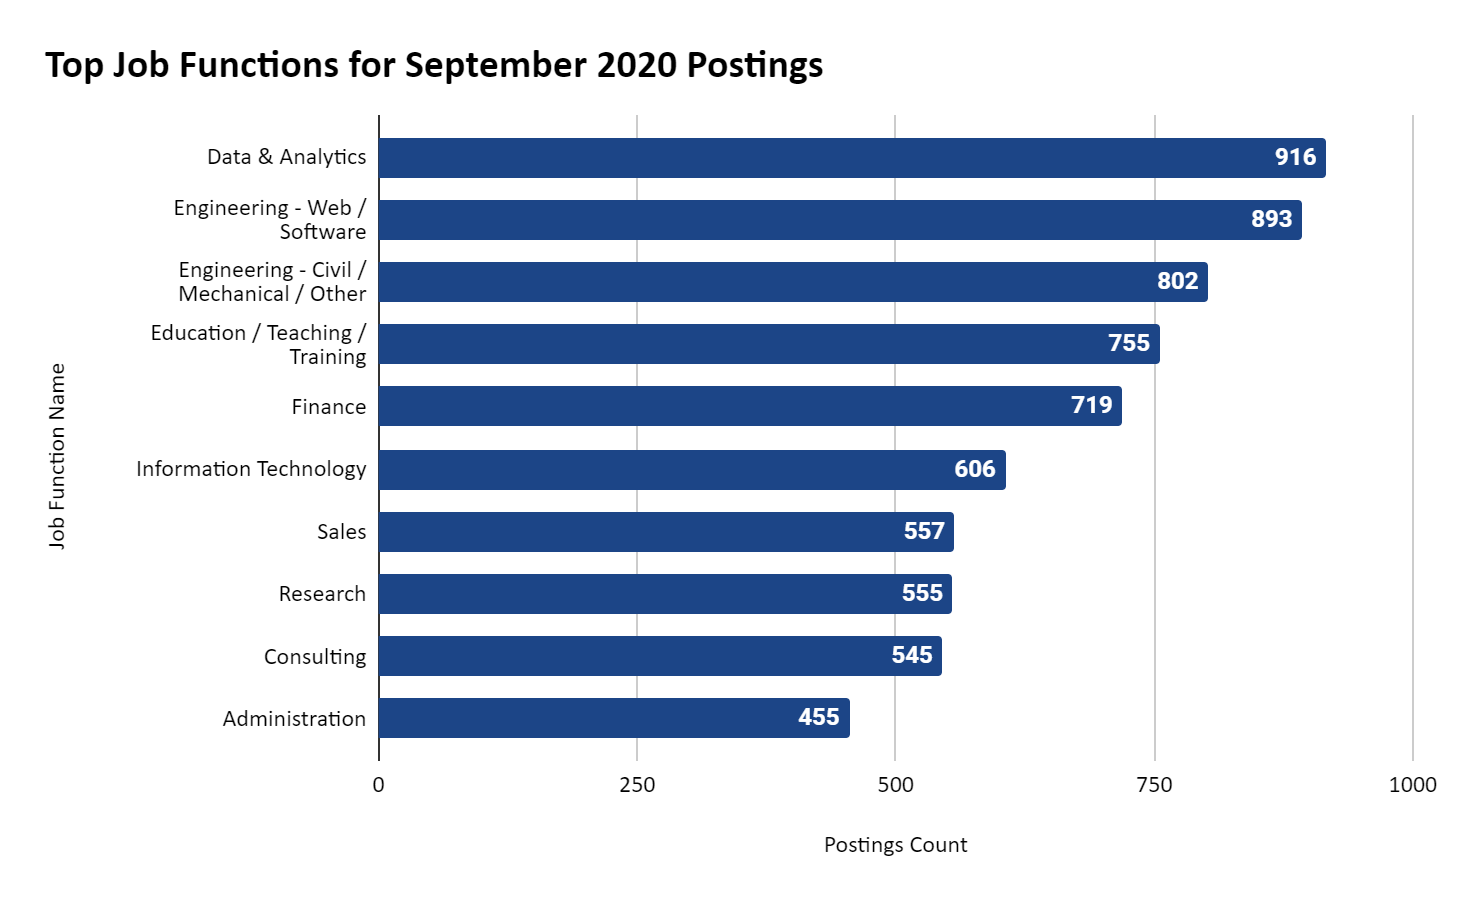 Horizontal Bar Chart showing the September 2020 postings in totals by top 10 job functions: Data & Analytics - 916; Engineering - Web / Software - 893; Engineering - Civil / Mechanical / Other - 802; Education / Teaching / Training - 755; Finance - 719; Information Technology - 606; Sales- 557; Research - 555; Consulting - 545; and Administration - 455.